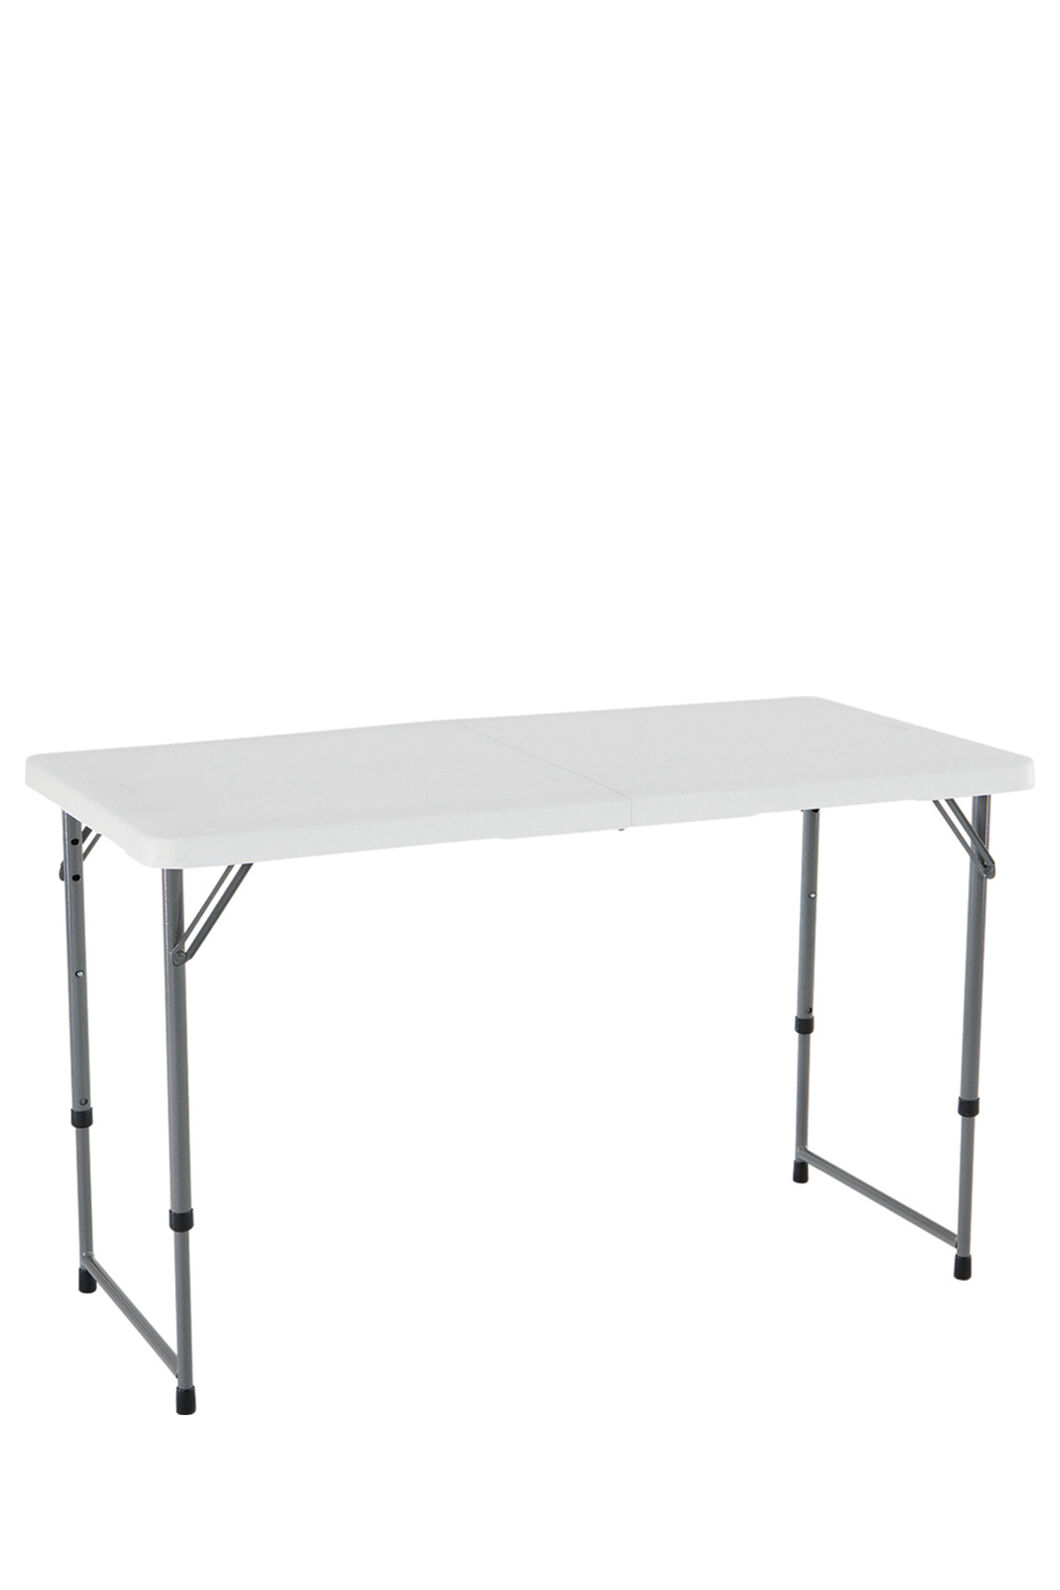 Lifetime Blow Mould Folding Table (121 cm), None, hi-res